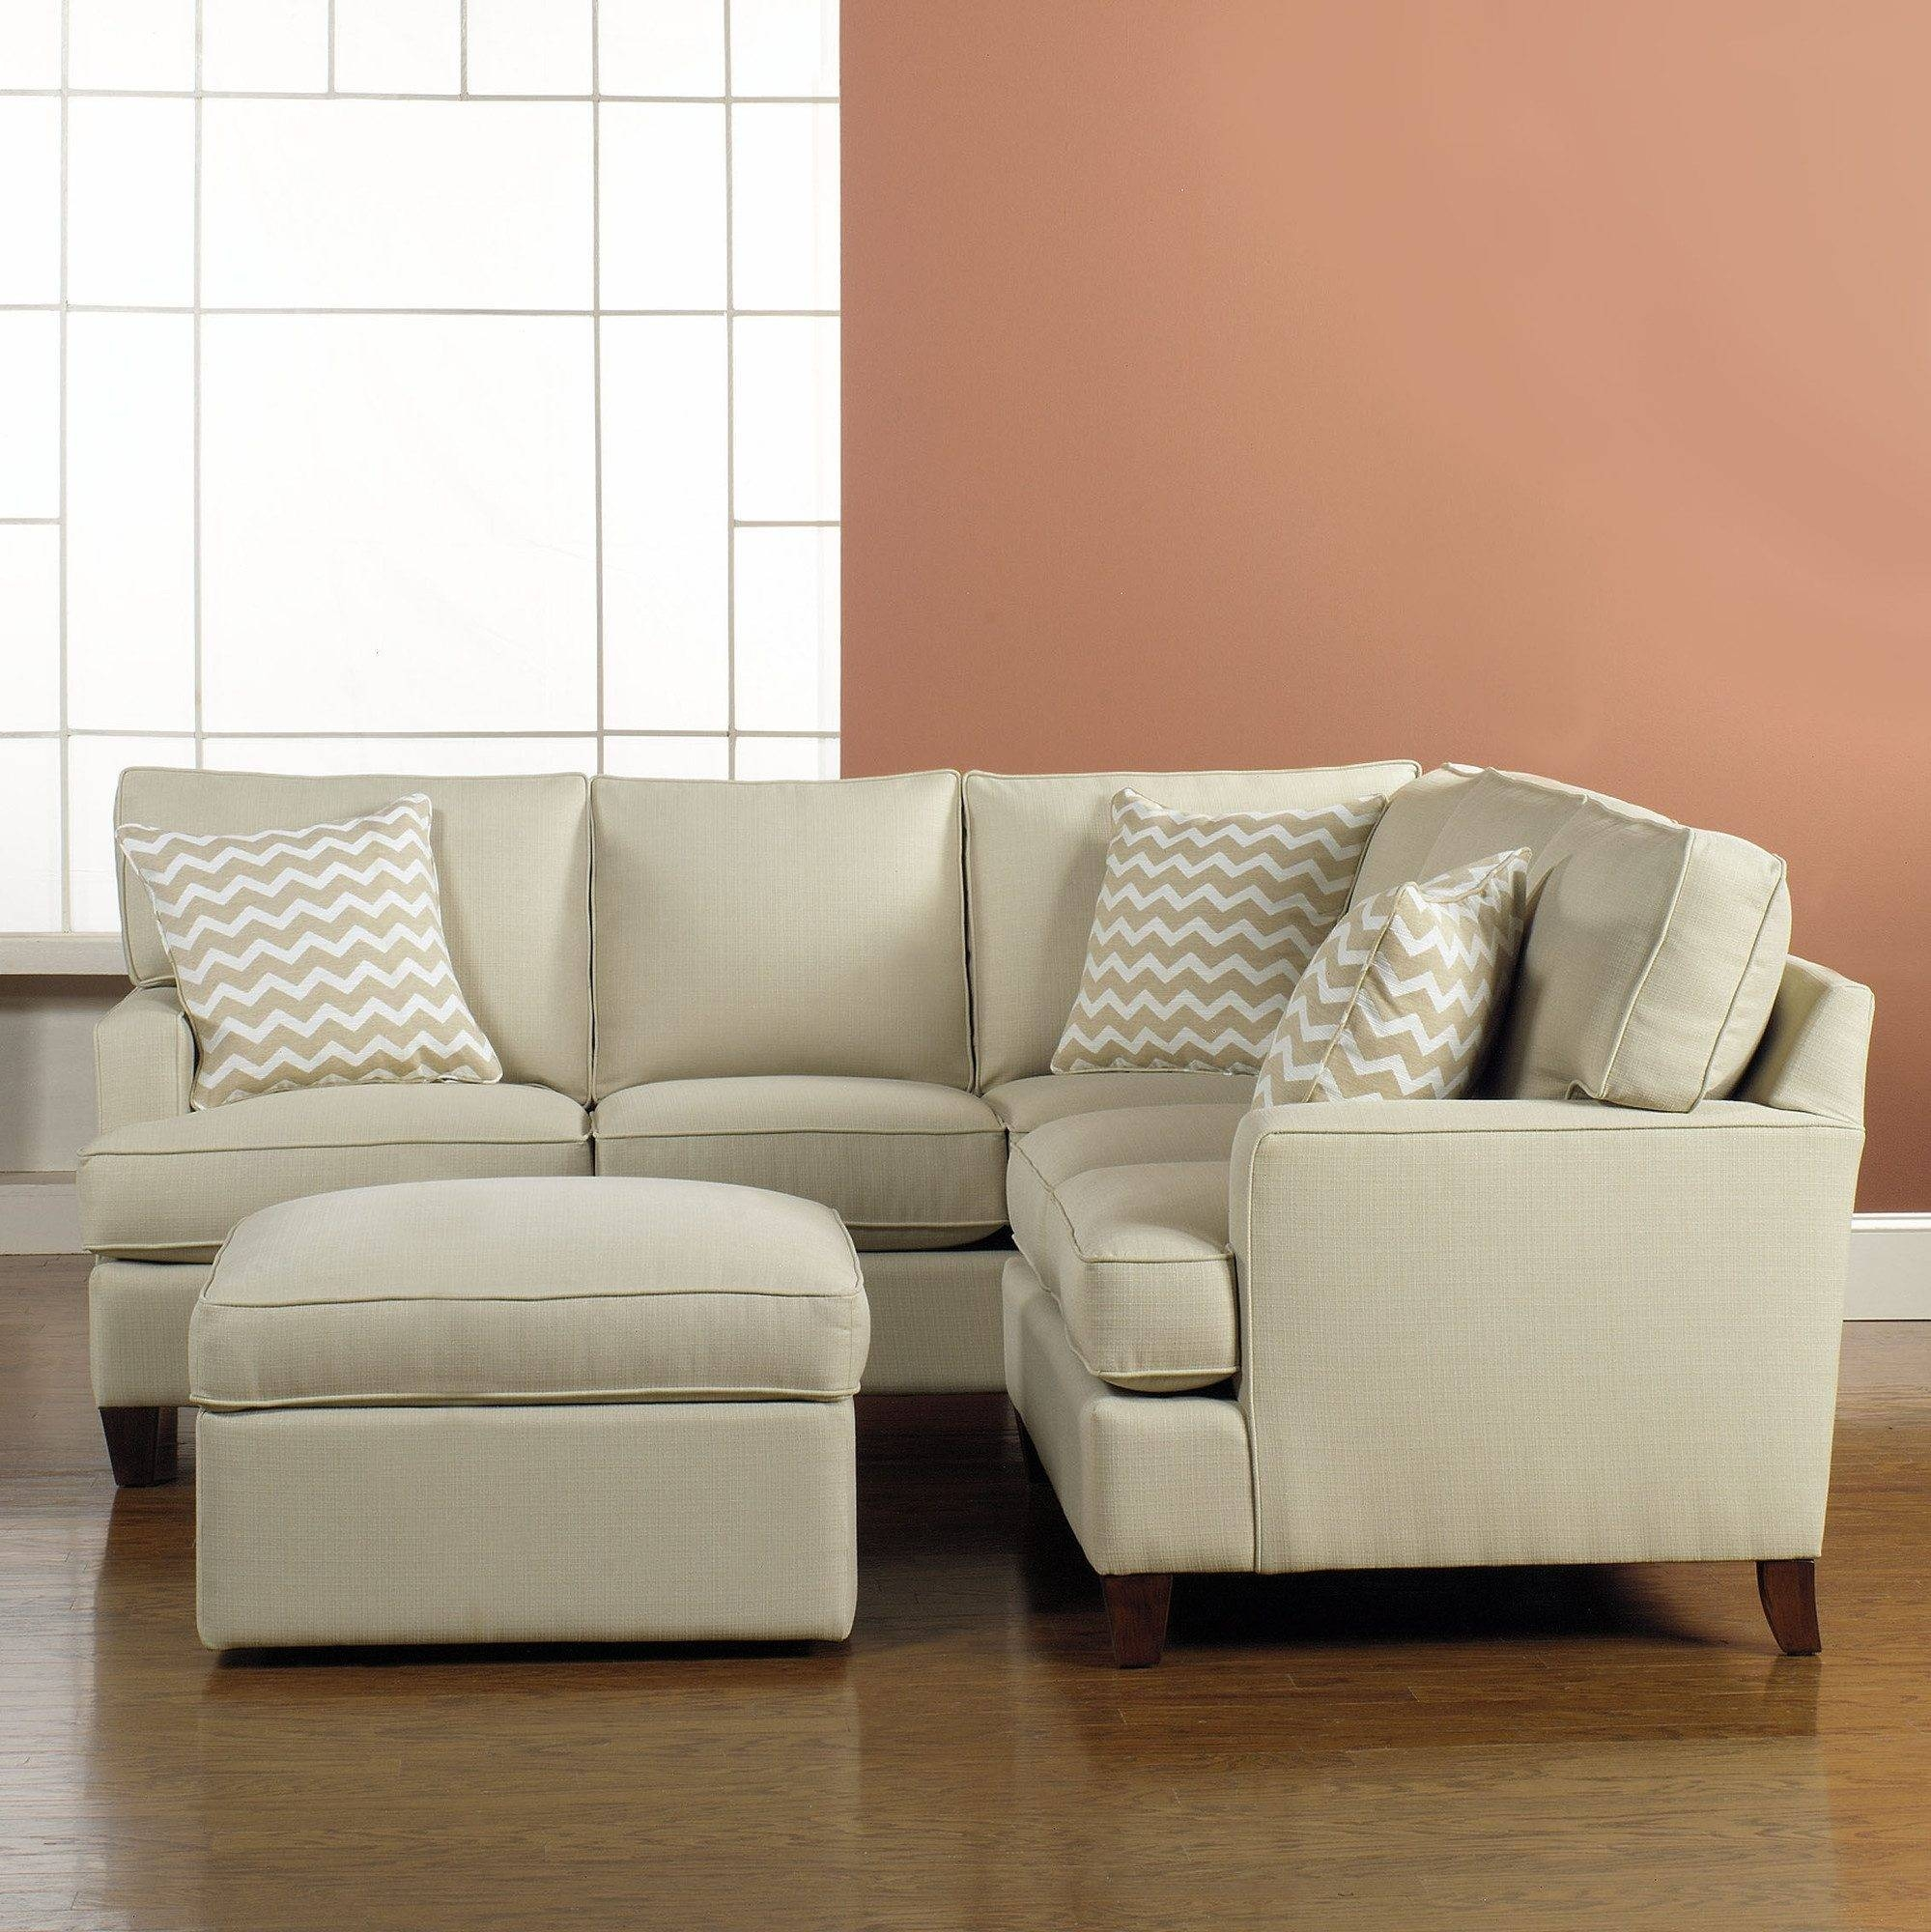 Stunning Small Couches For Apartments Ideas - Home Iterior Design regarding Condo Sectional Sofas (Image 30 of 30)